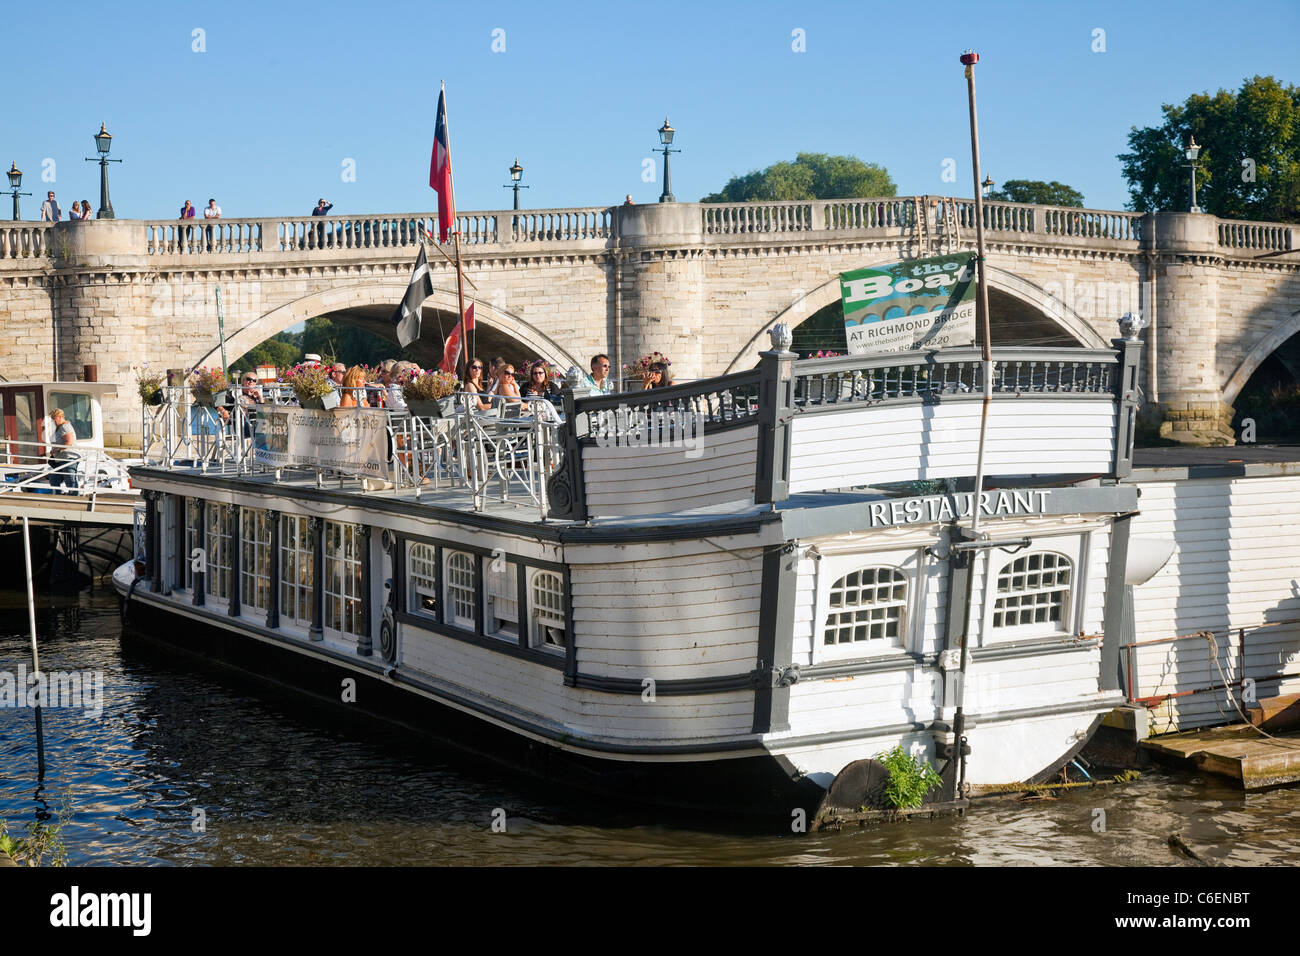 Floating Restaurant at Richmond in Surrey UK - Stock Image